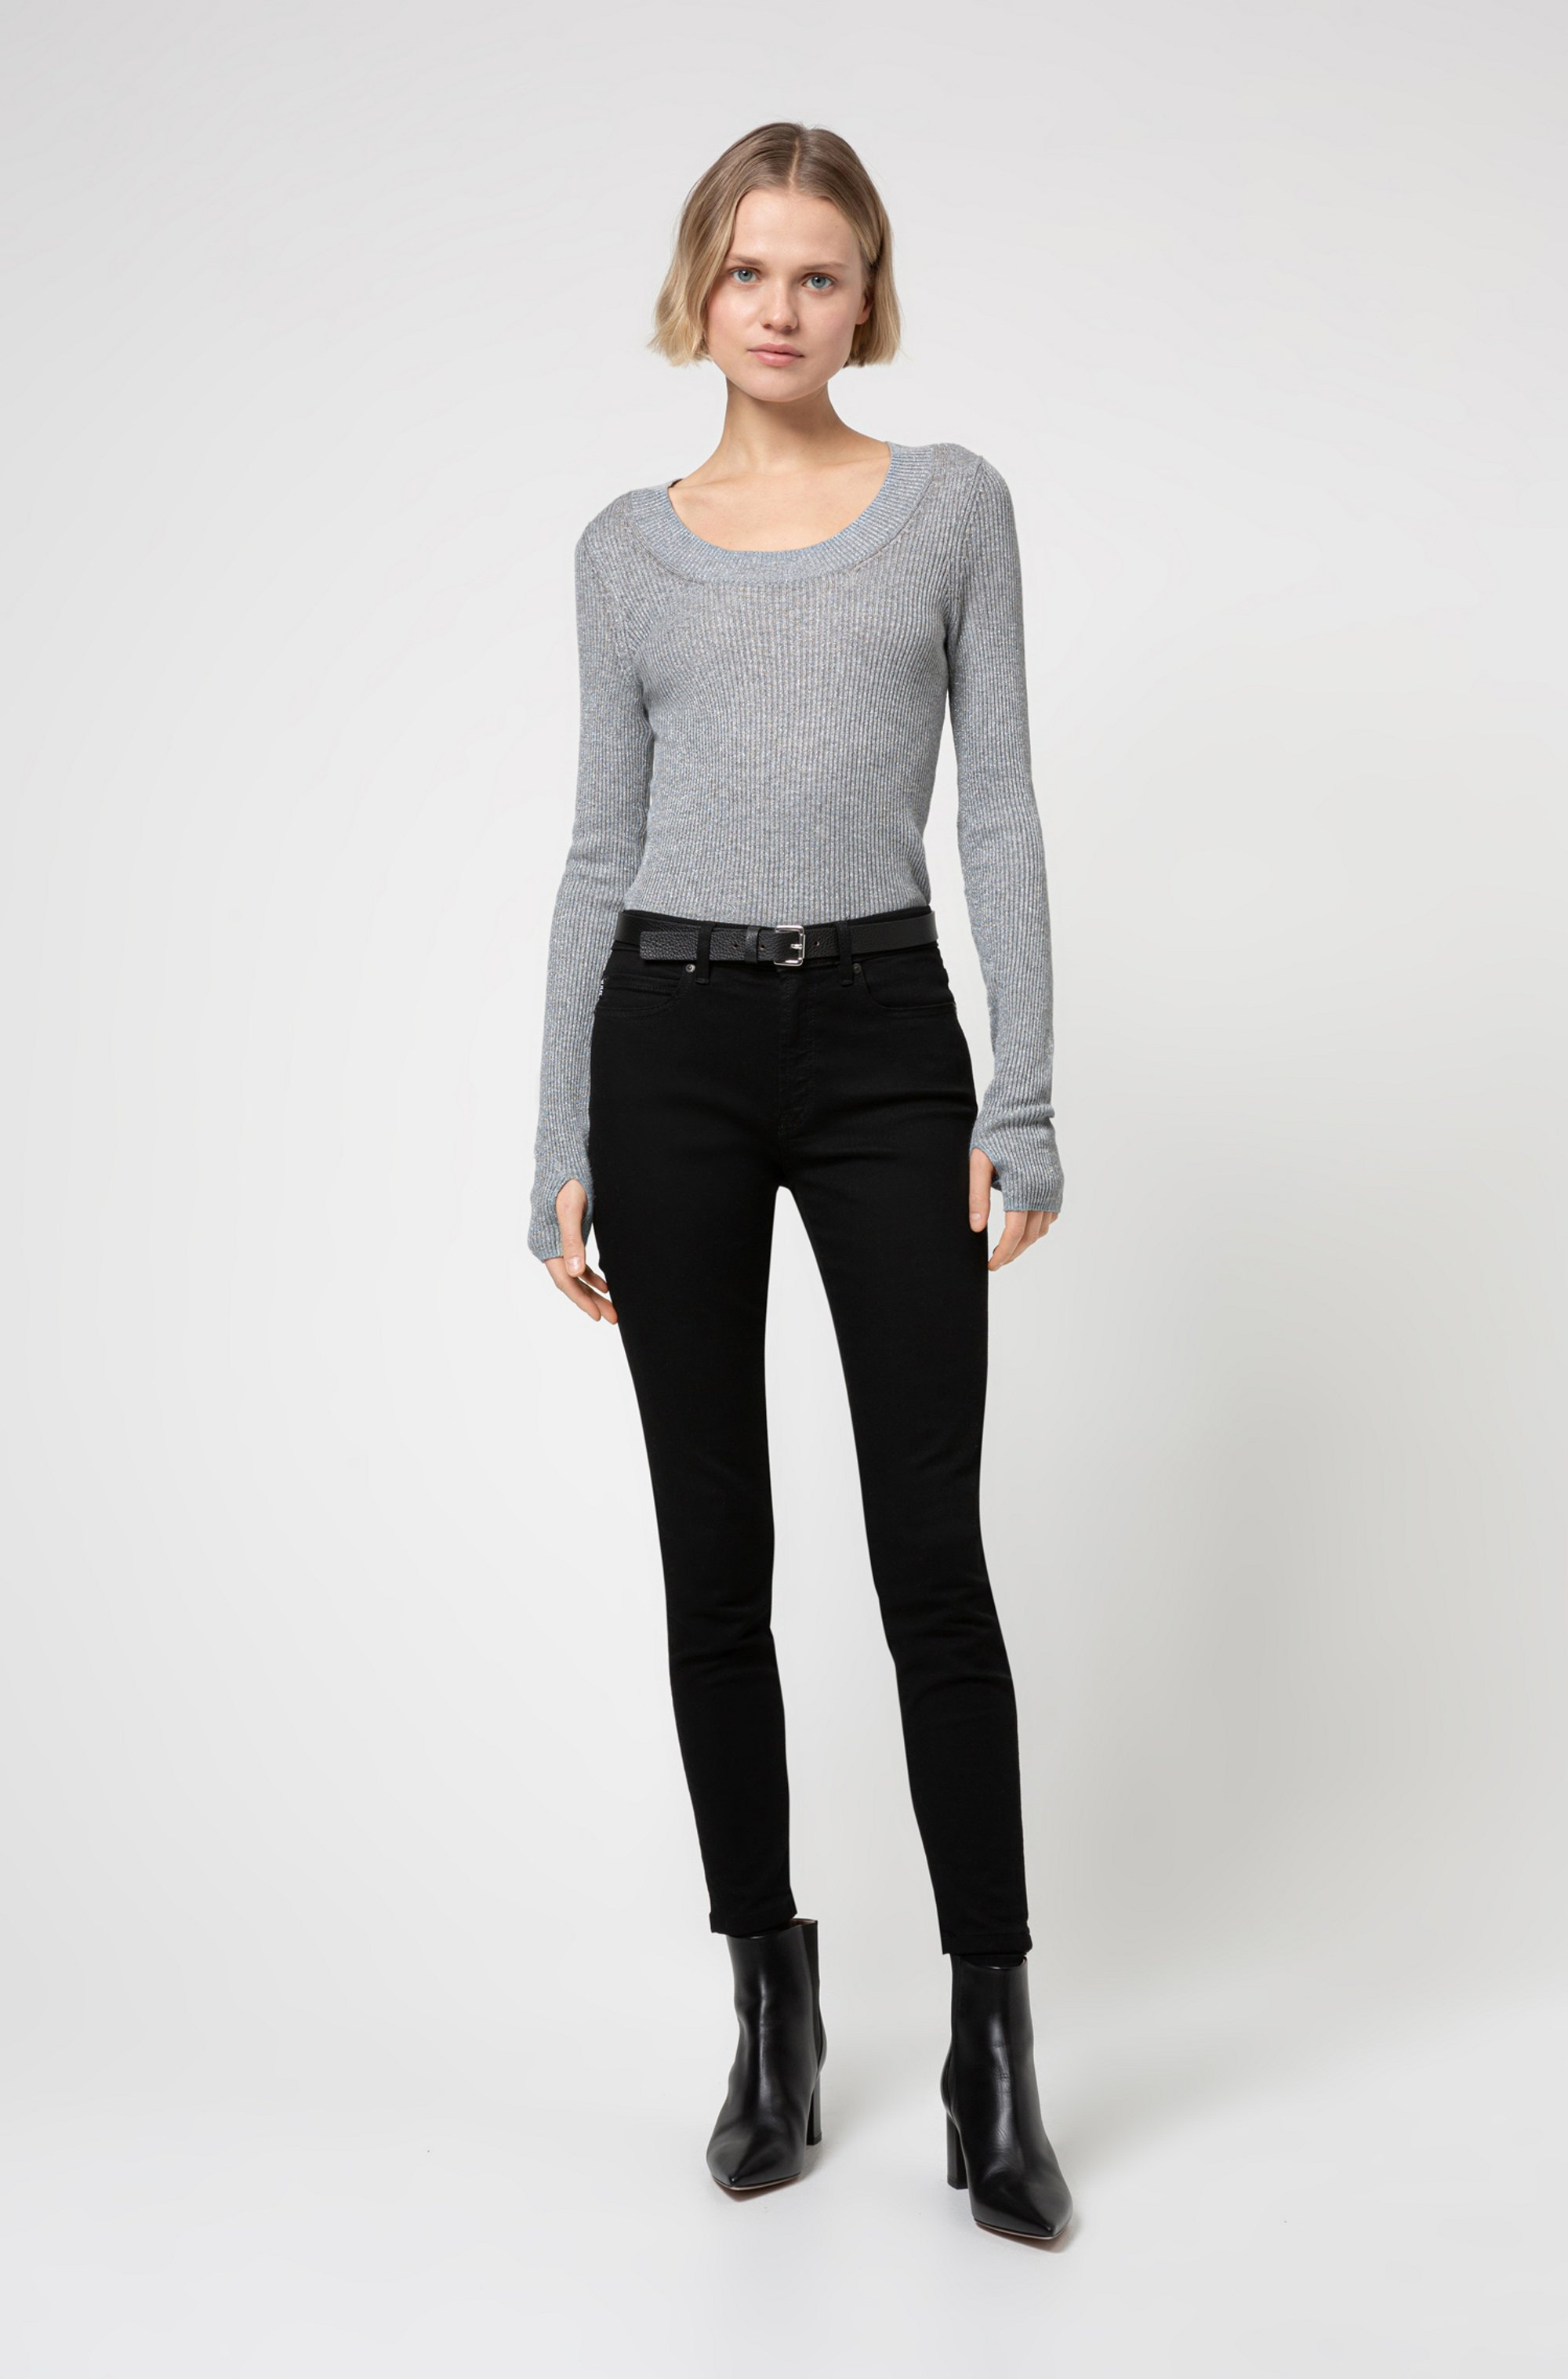 Glittery-effect sweater with thumbholes